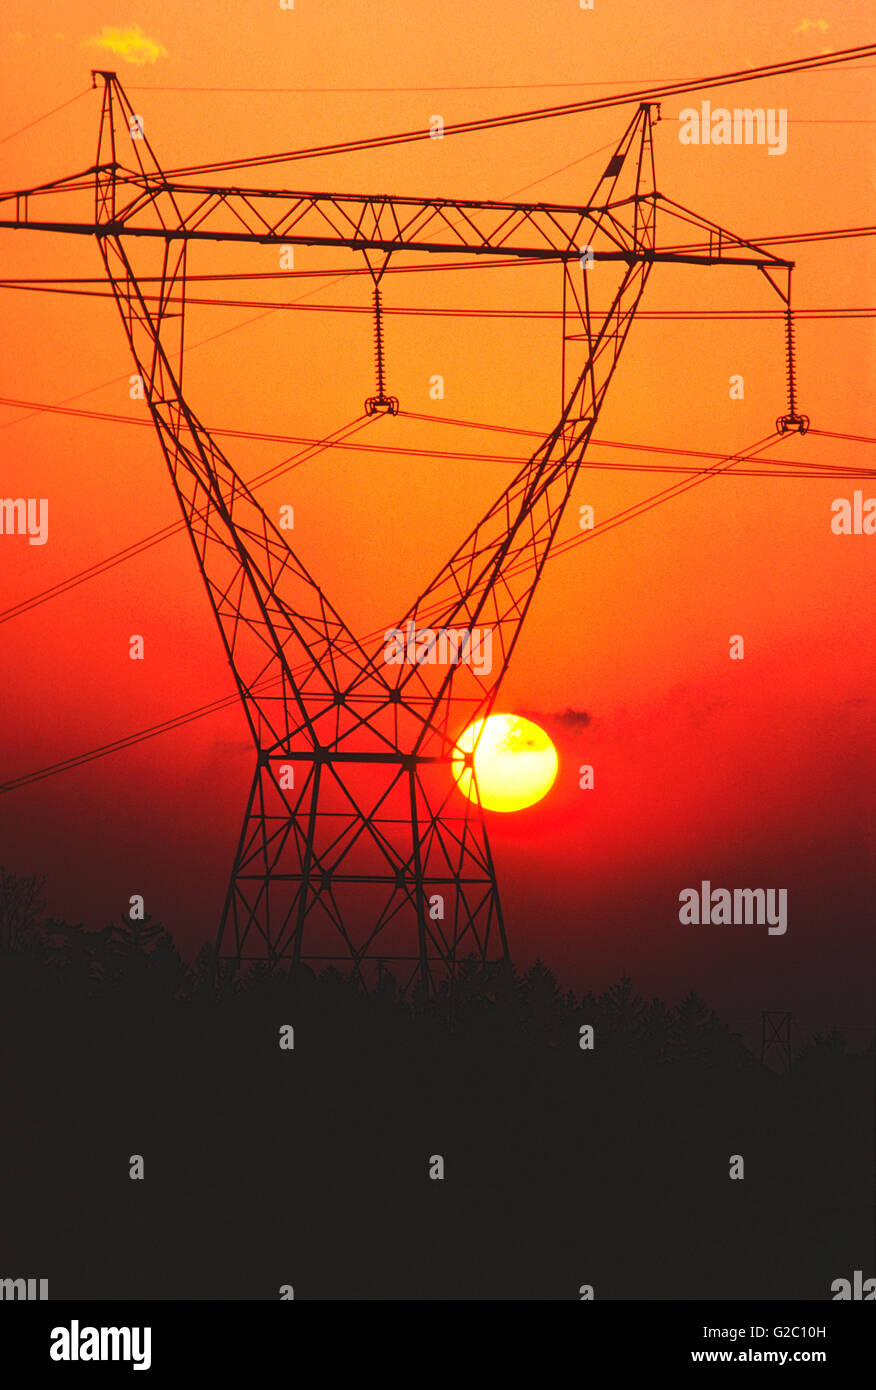 Sunset viewed through electrical transmission power lines and tower, upstate New York, USA - Stock Image